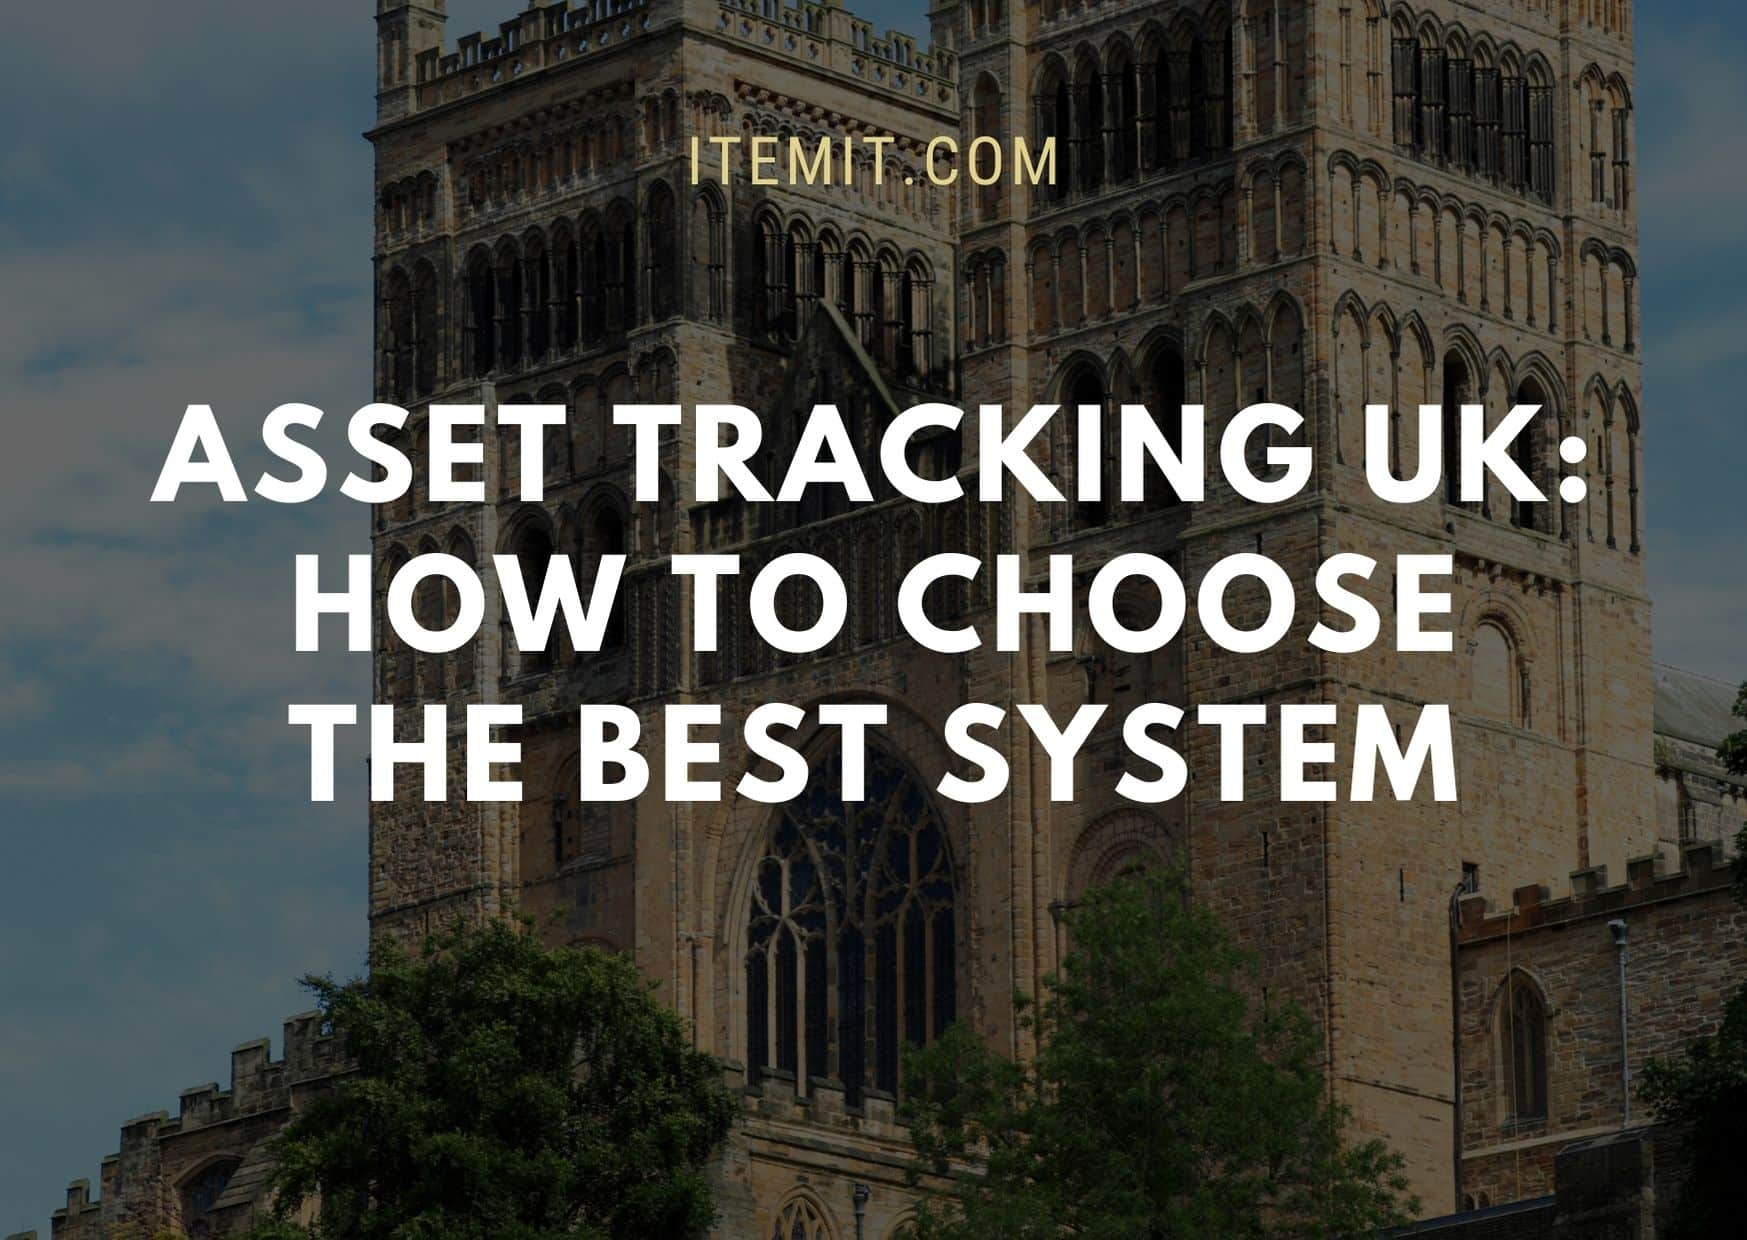 Asset Tracking UK How to Choose the Best System